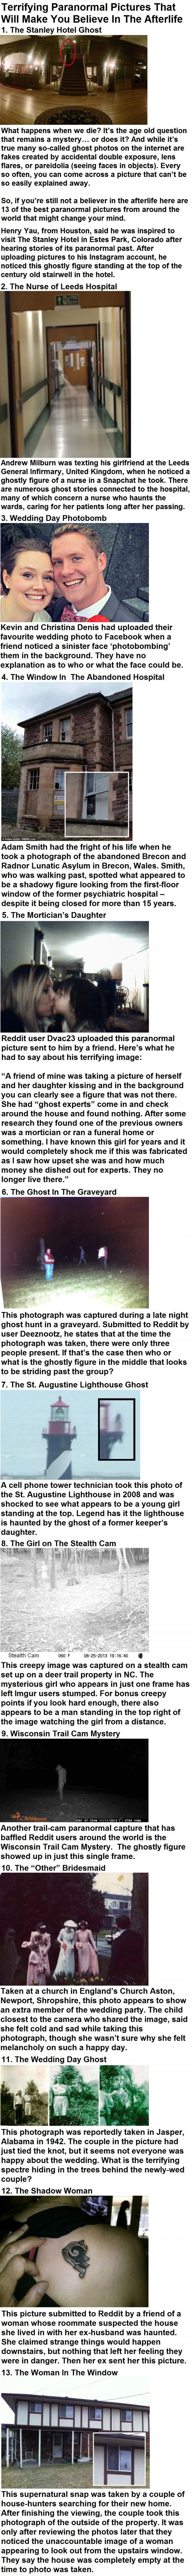 Terrifying paranormal pictures that'll make you believe in the afterlife